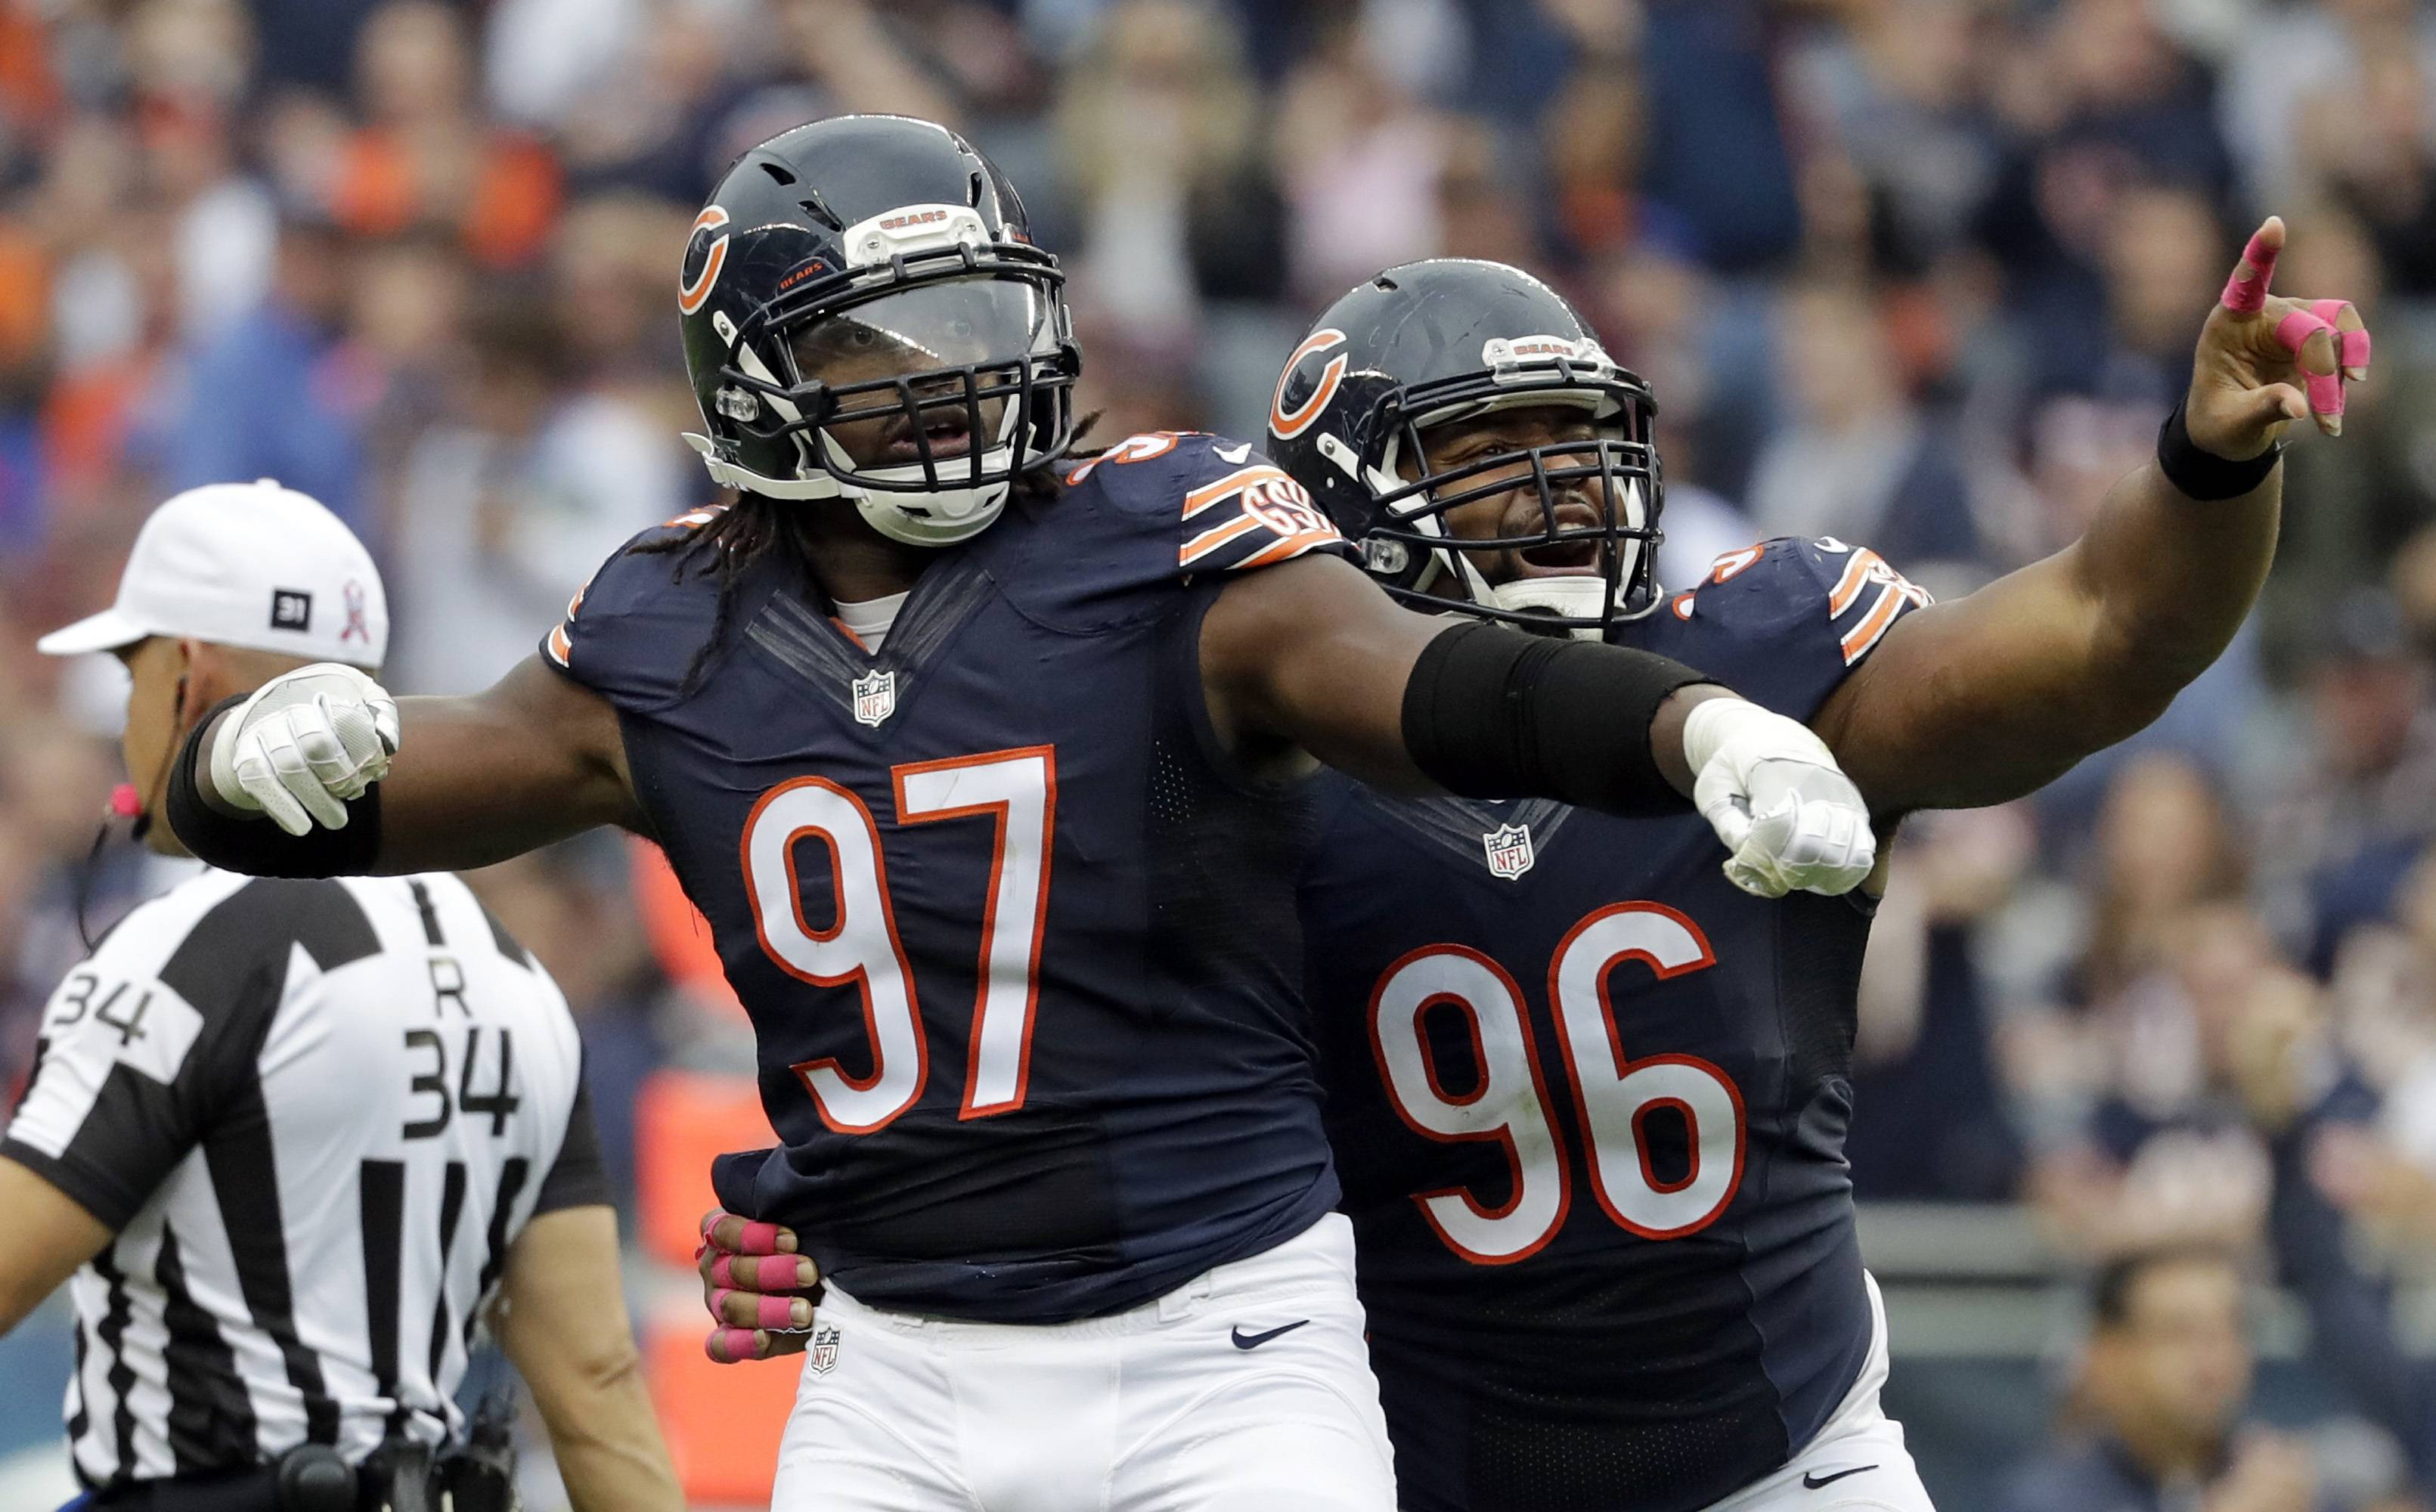 Chicago Bears outside linebacker Willie Young (97) and defensive end Akiem Hicks (96) celebrates a sack against the Jacksonville Jaguars during the first half of an NFL football game in Chicago, Sunday, Oct. 16, 2016.